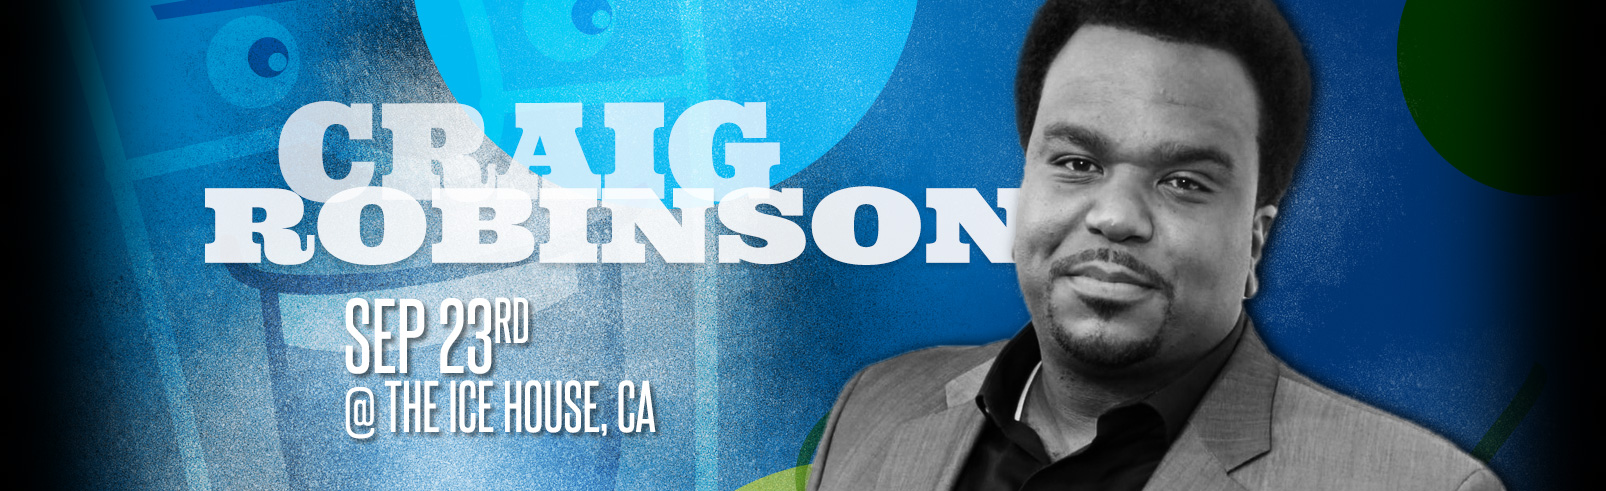 Craig Robinson @ The Ice House